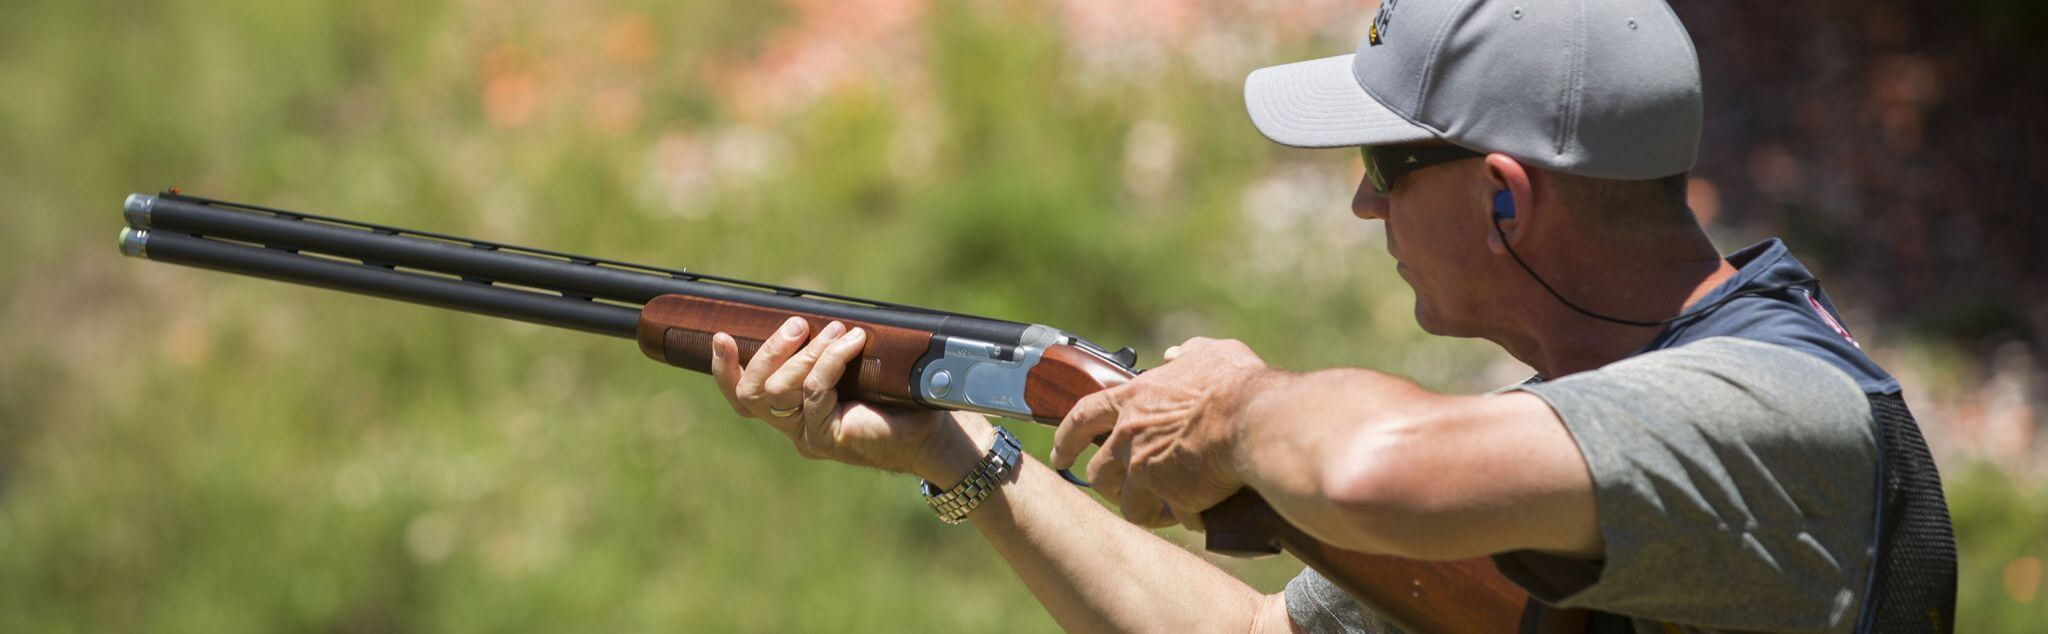 Clay Pigeon Shooting in United Kingdom